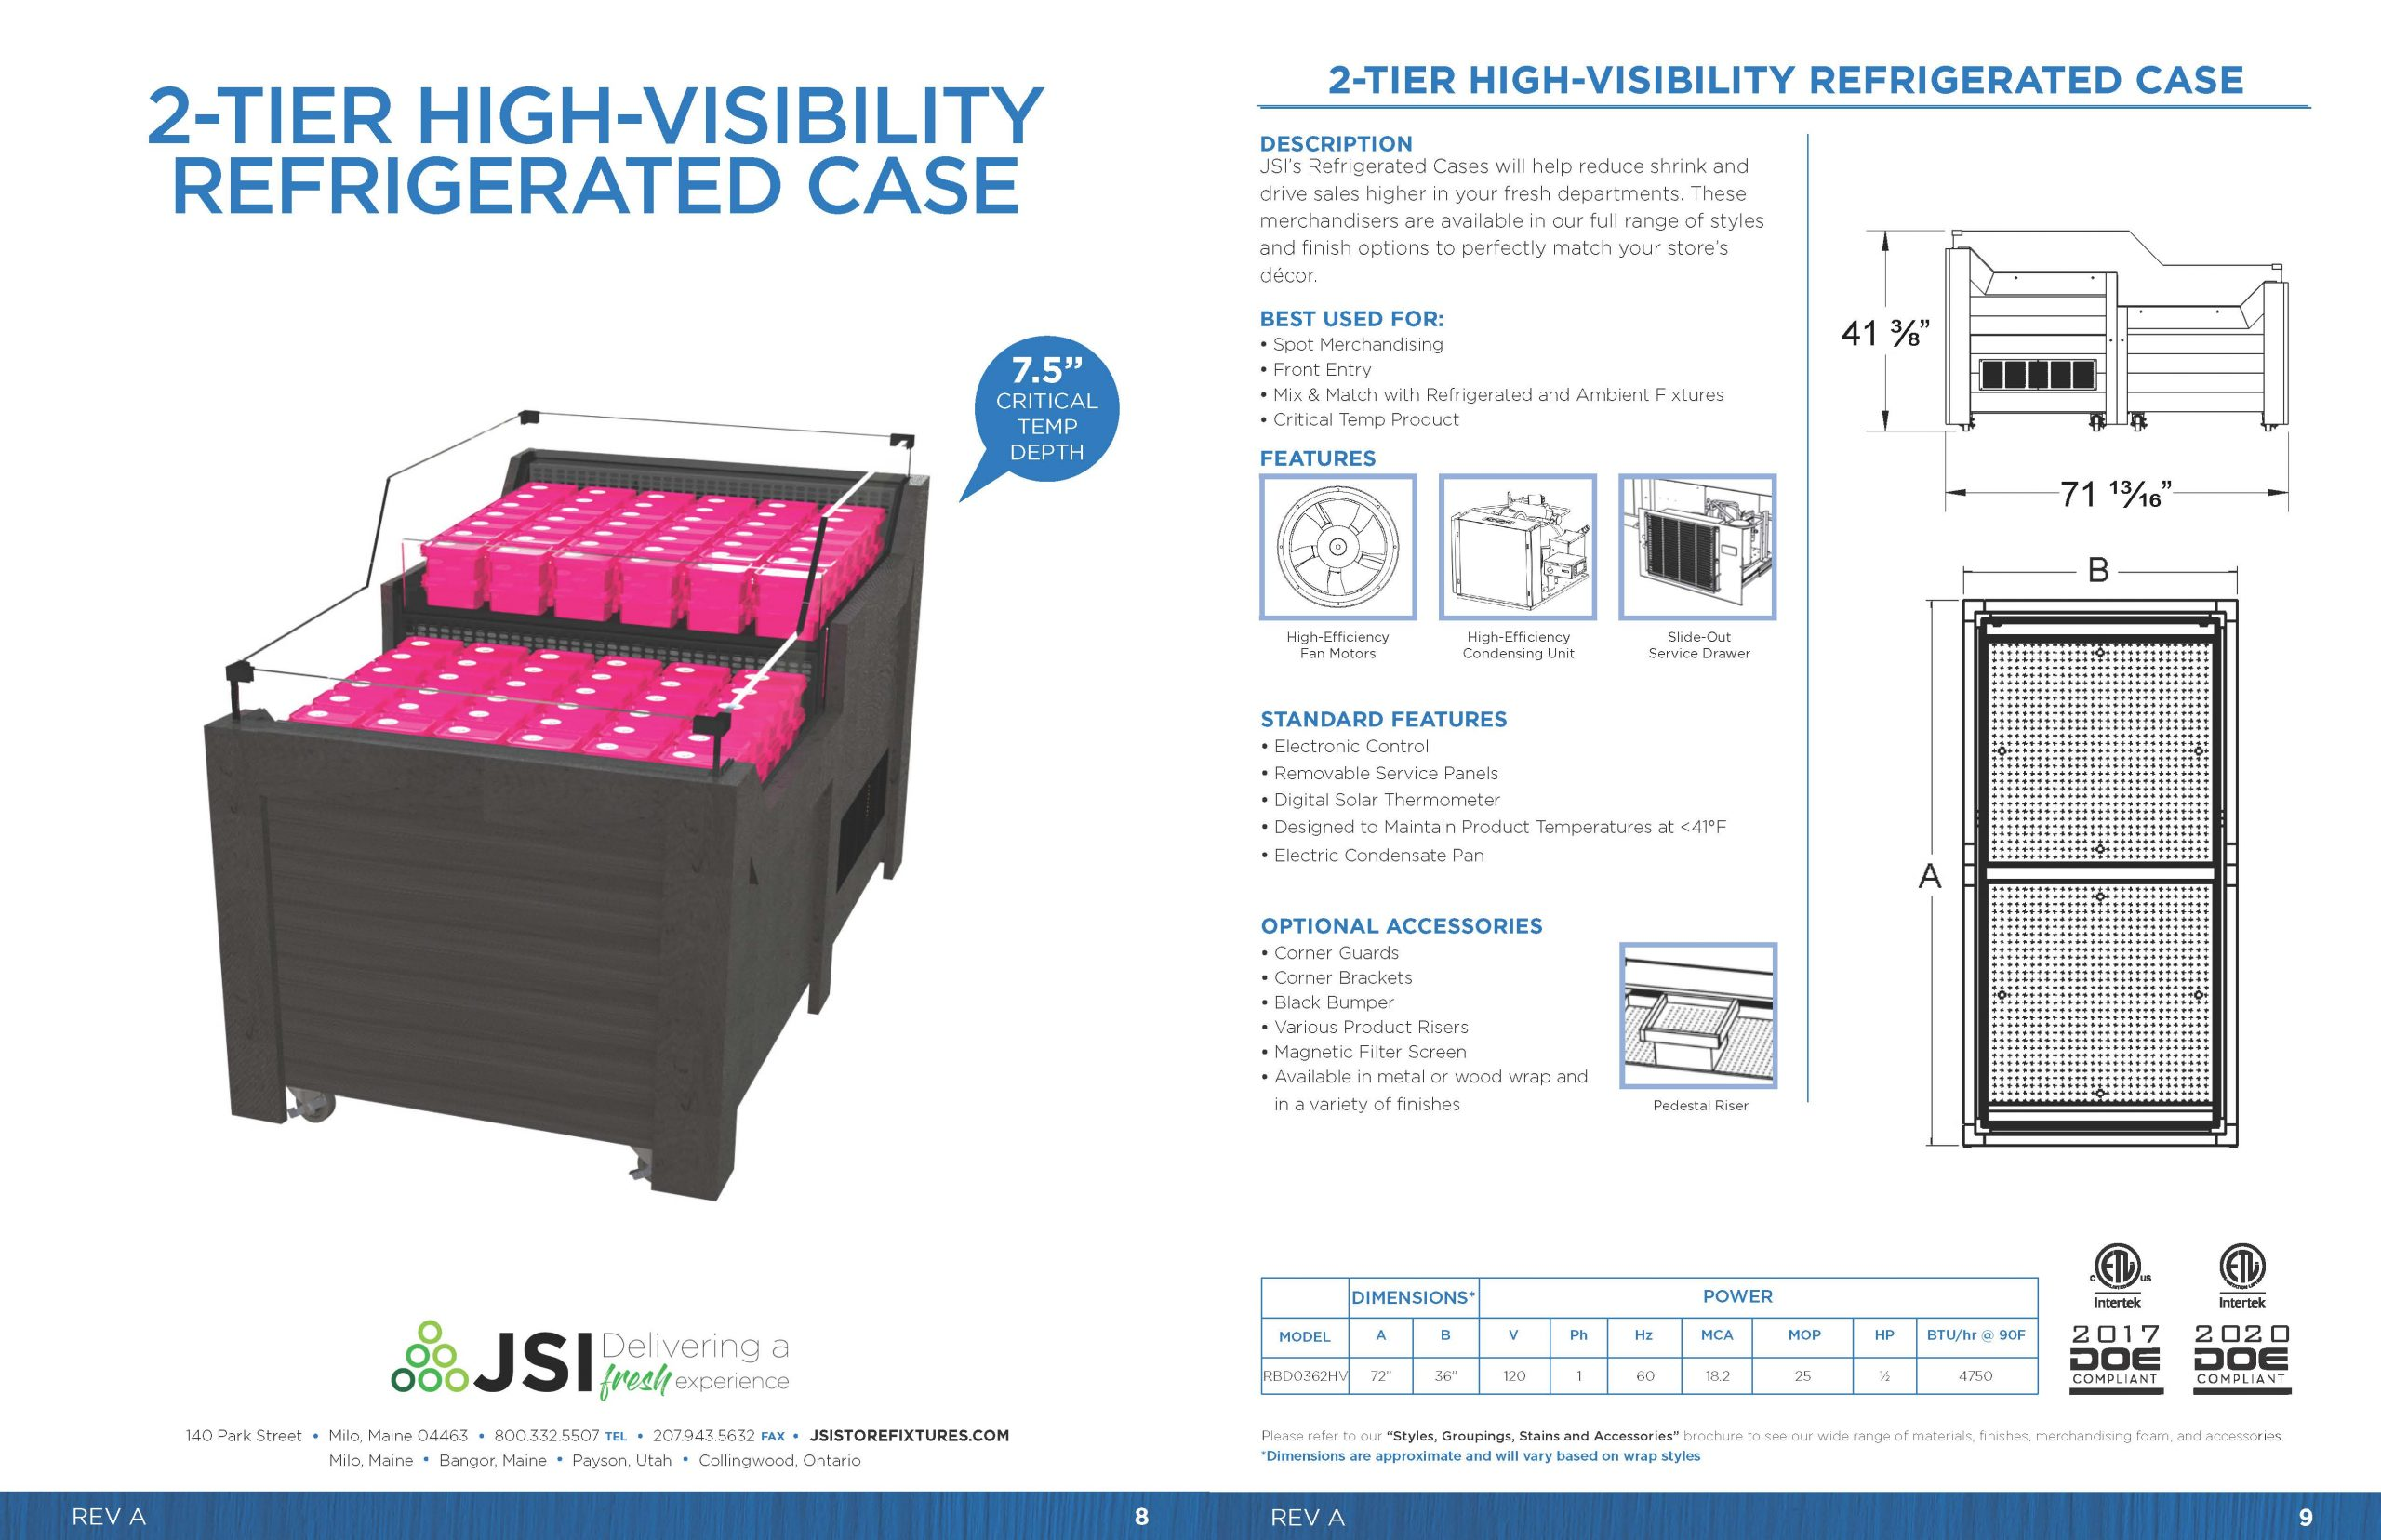 2-Tier High-Visibility Refrigerated Case